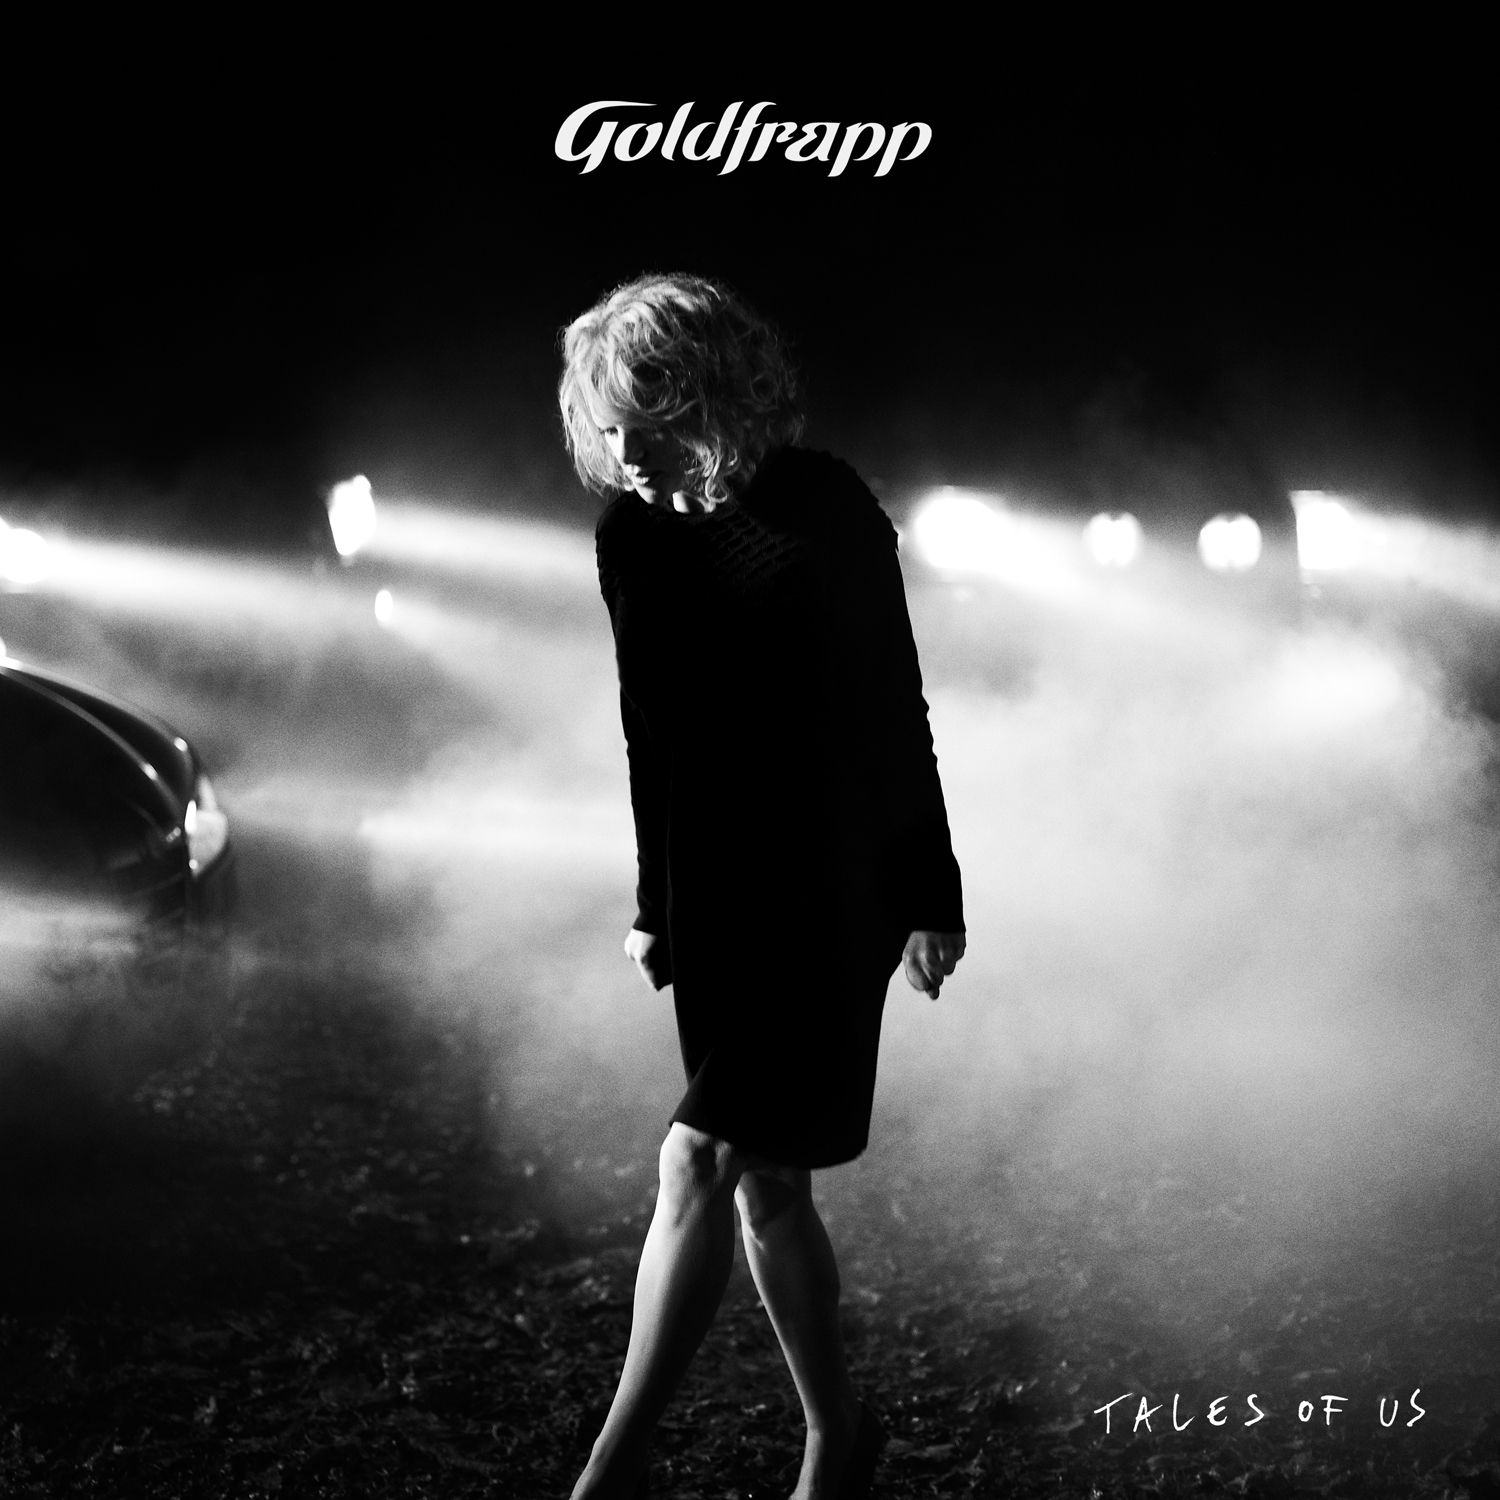 GOLDFRAPP : « Tales of Us », nouvel album le 9 septembre chez Mute